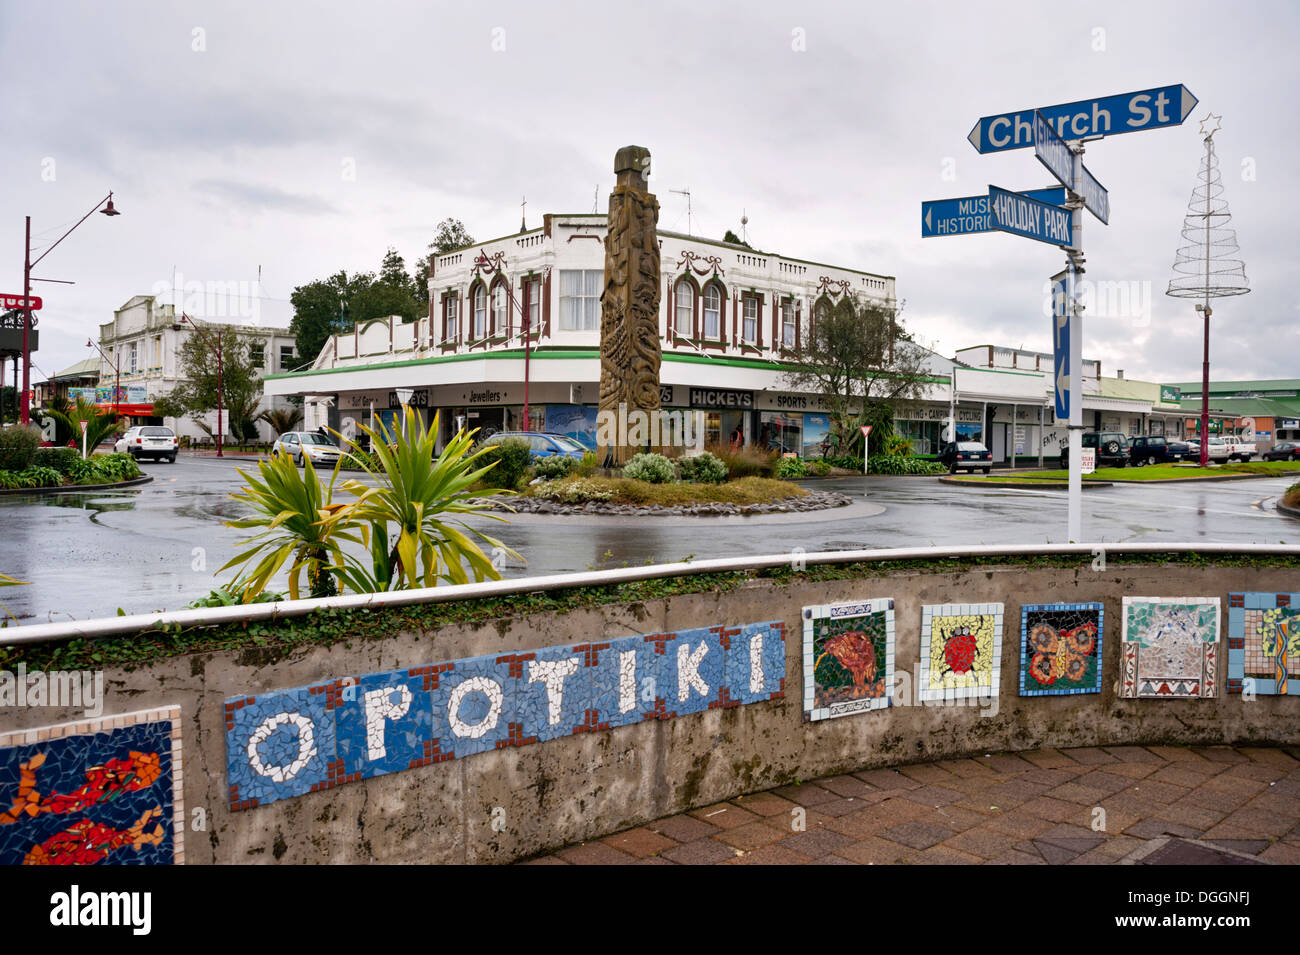 A Maori totem on a road roundabout in the small town of Opotiki, North Island, New Zealand. - Stock Image